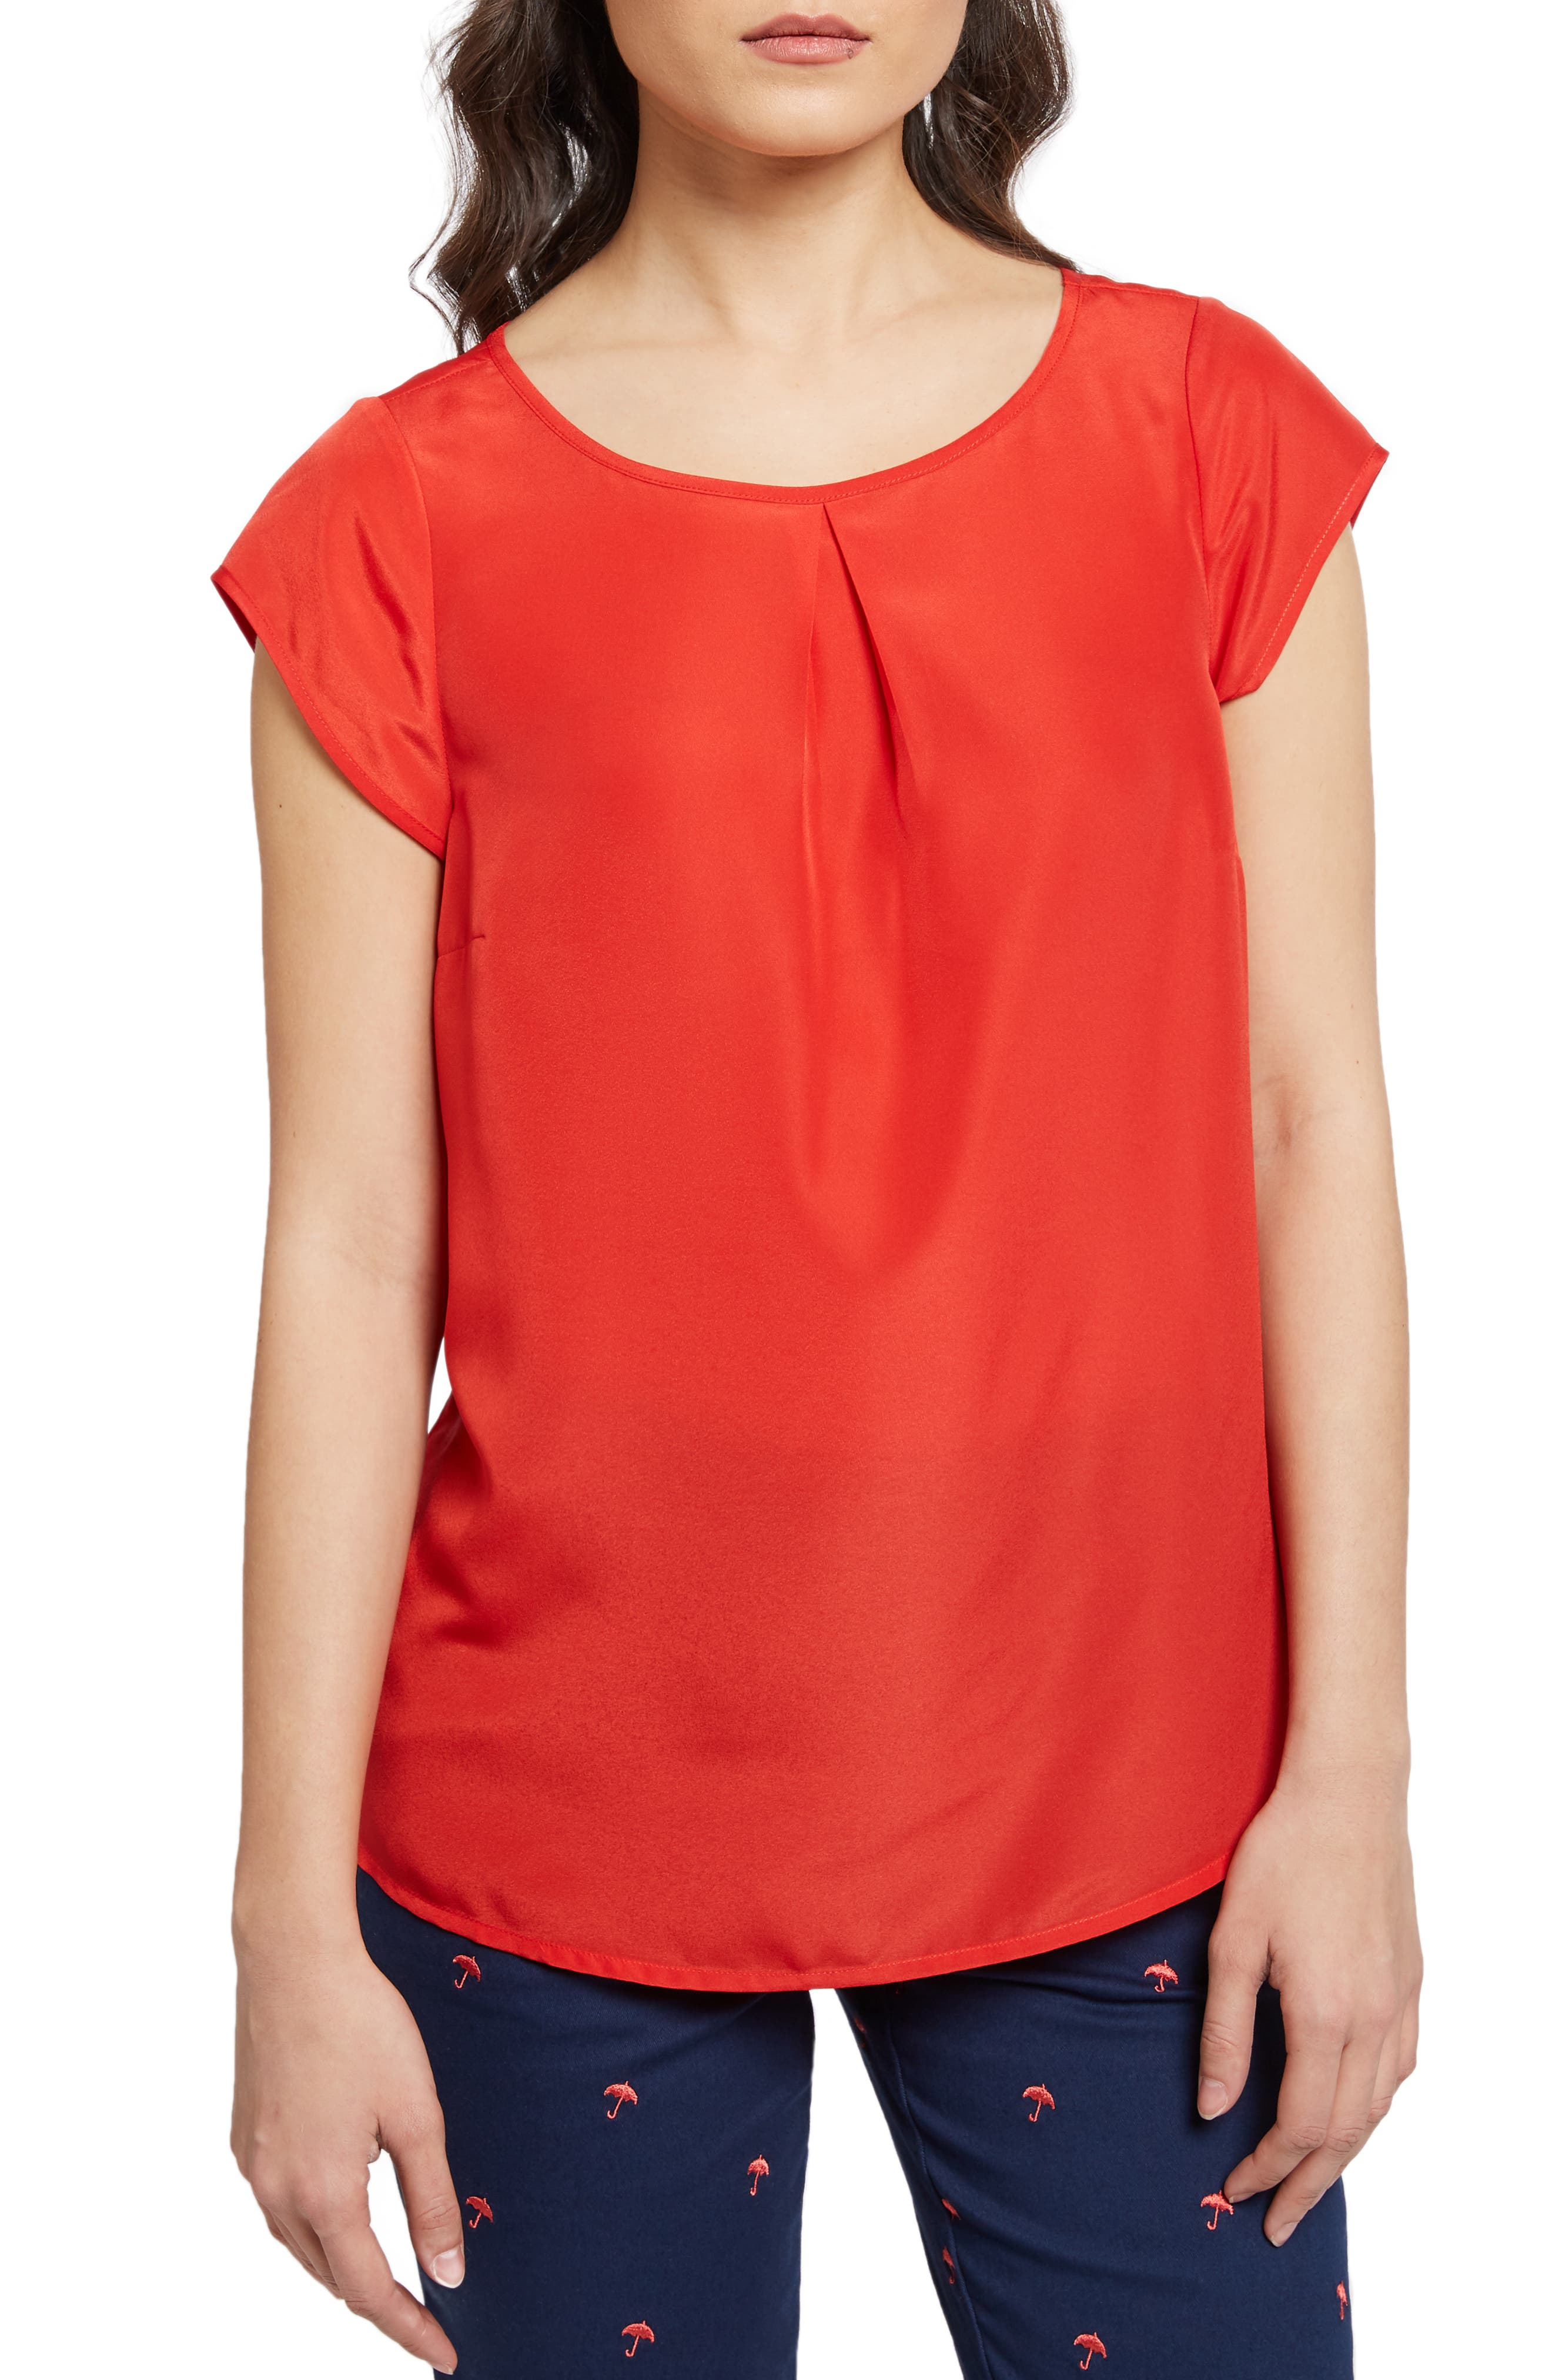 MODCLOTH, Graceful Expectations Top, Main thumbnail 1, color, RED SOLID